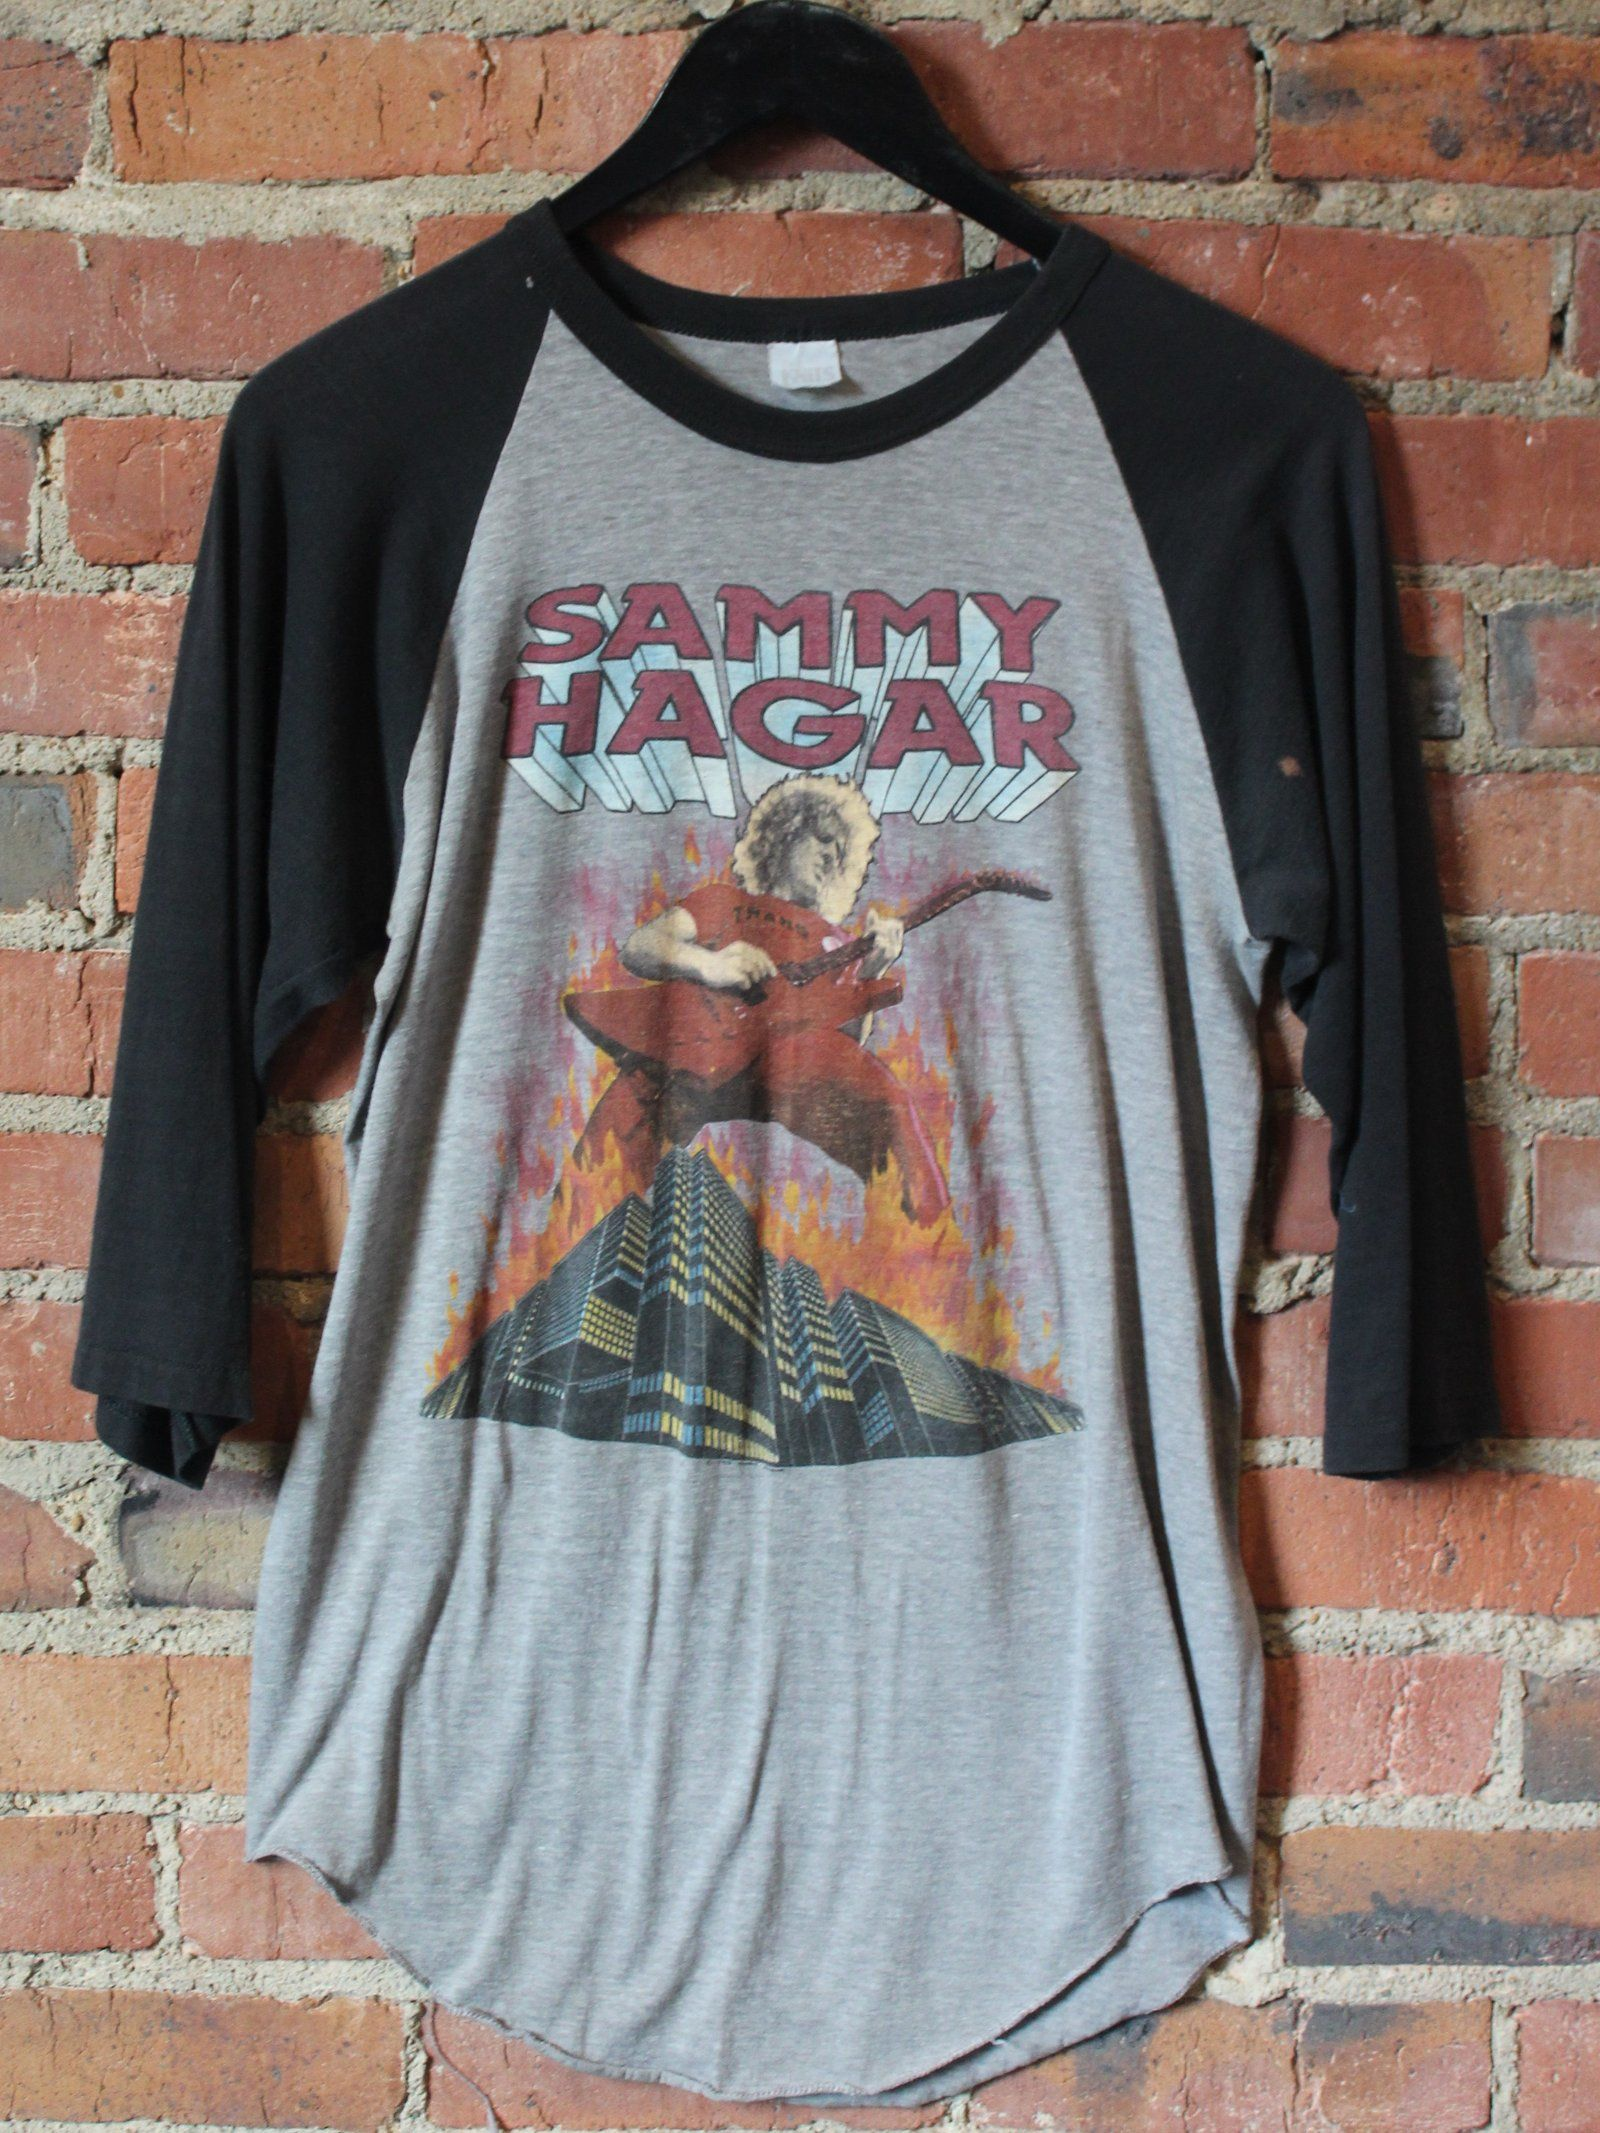 Thrashed 80 S Sammy Hagar Red Hot Rock Tour T Shirt 85 8 Shipping Domestic Sold As Is Dm For Inquiries Size Sma Tour T Shirts Mens Tops Shirts